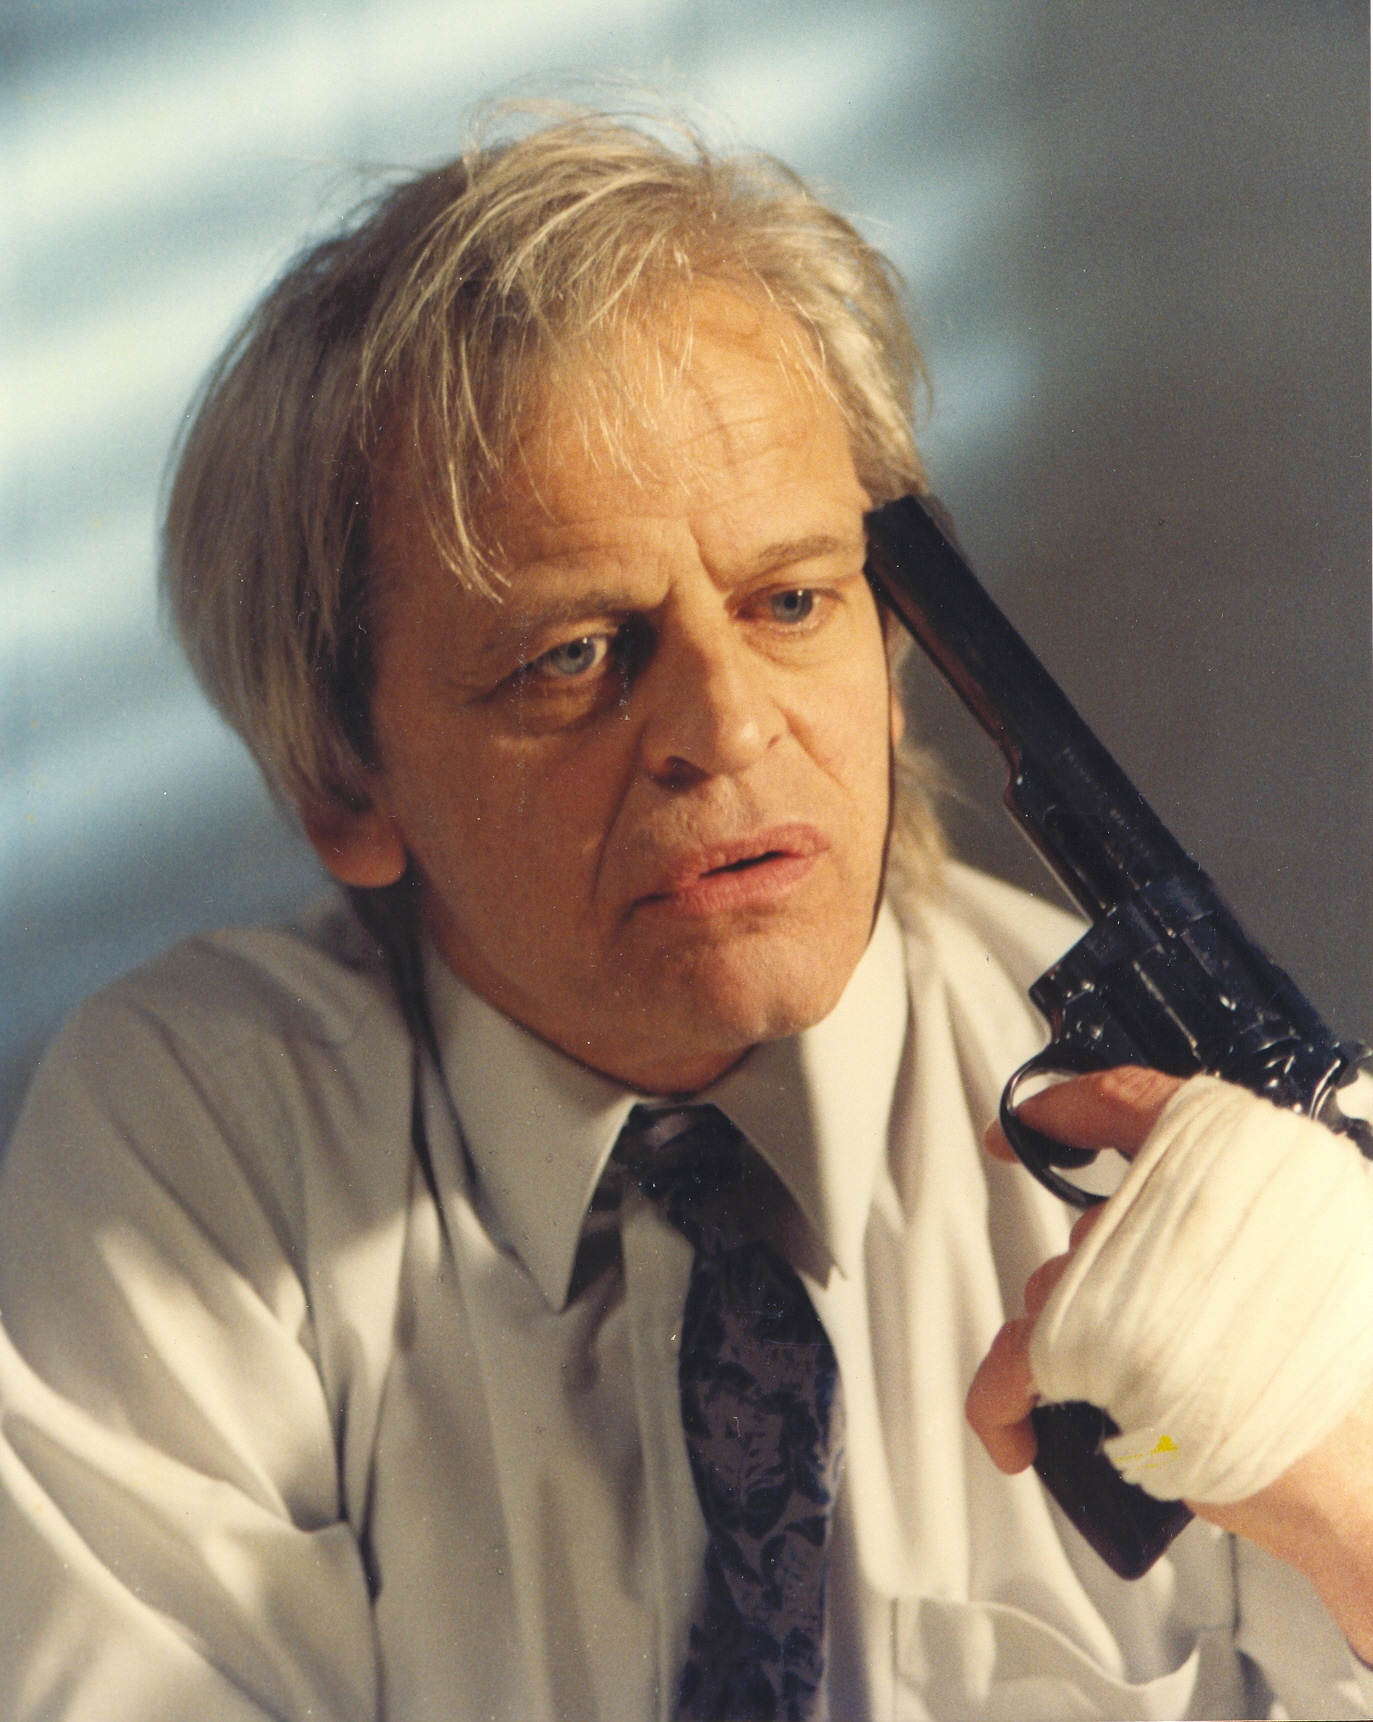 http://locotigrero.files.wordpress.com/2012/02/klaus-kinski-crawlspace.jpg